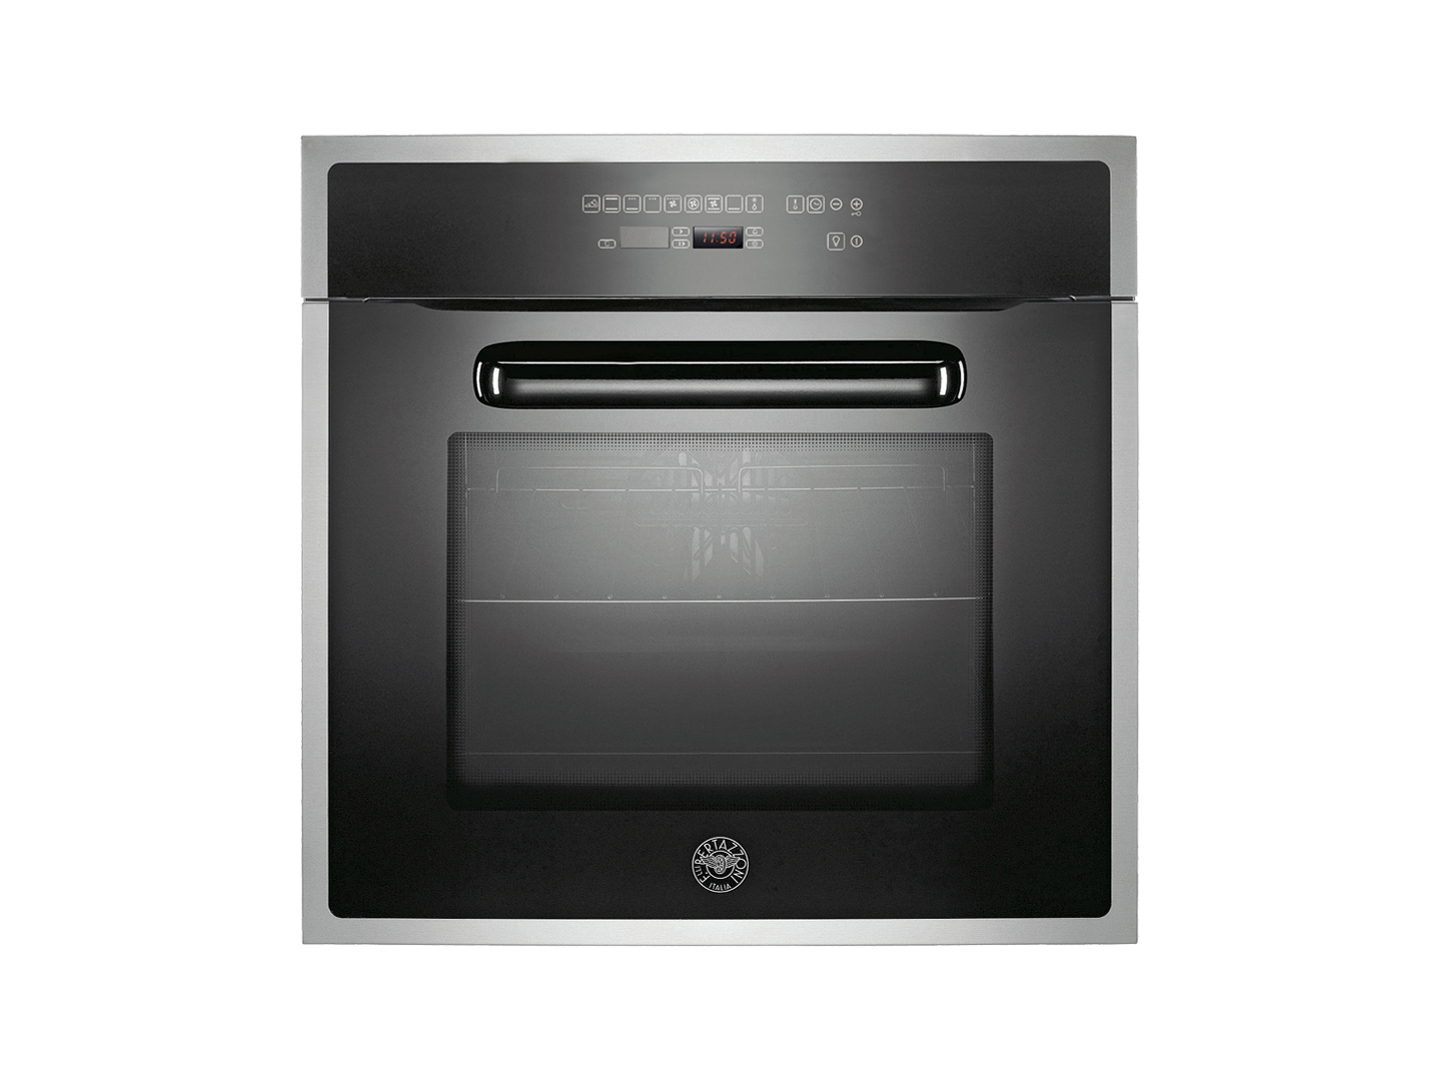 60 single oven XD | Bertazzoni - Black